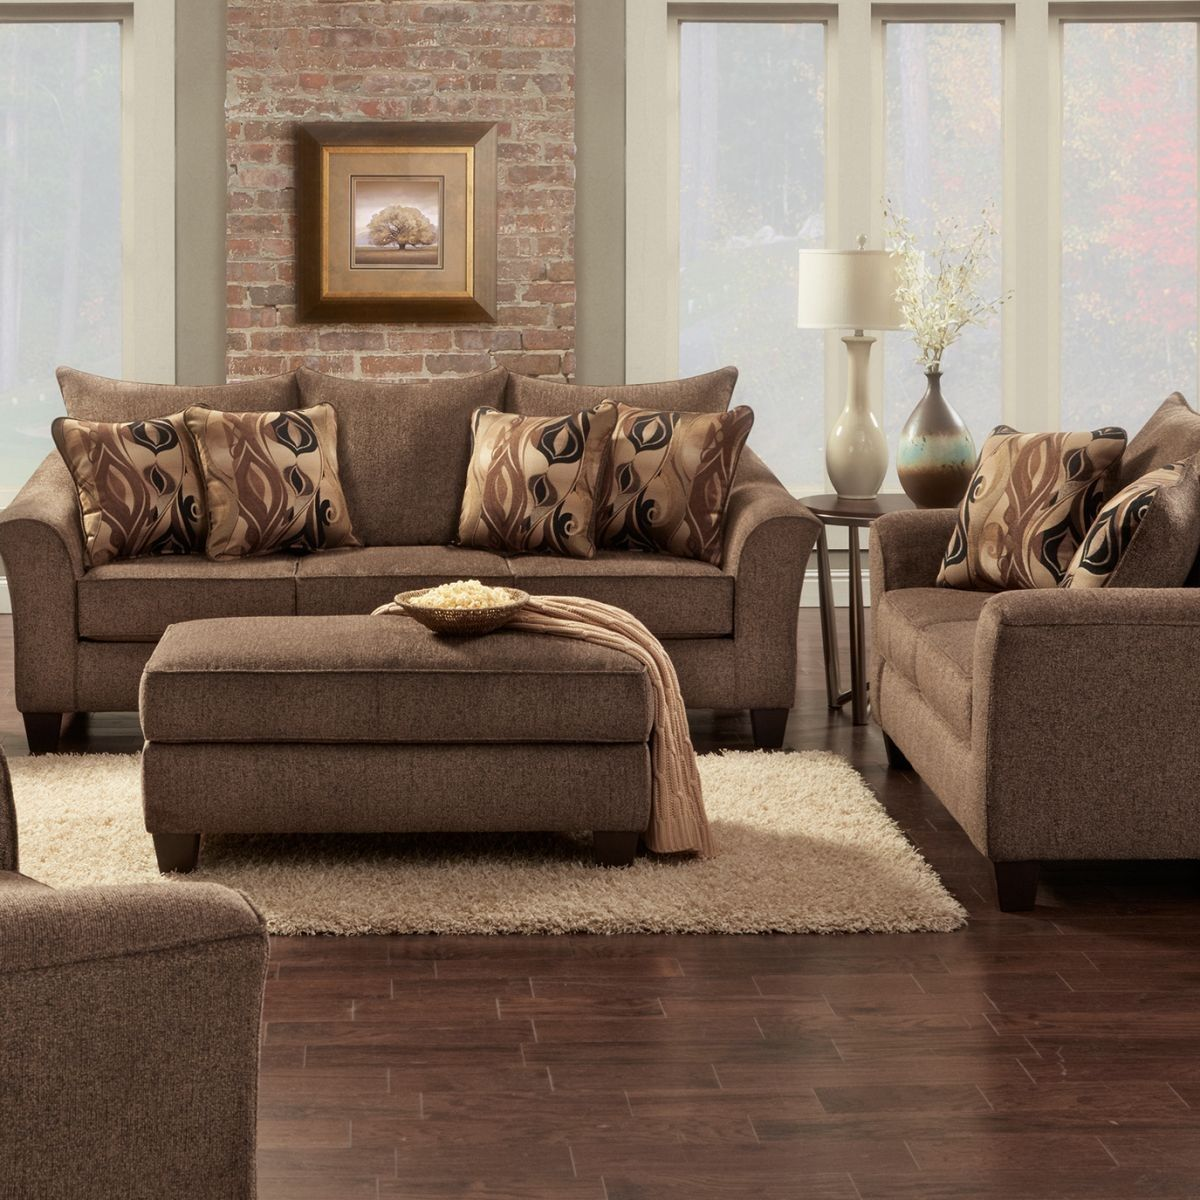 Badcock & More | Camero Brown Sofa & Loveseat | Brown living room